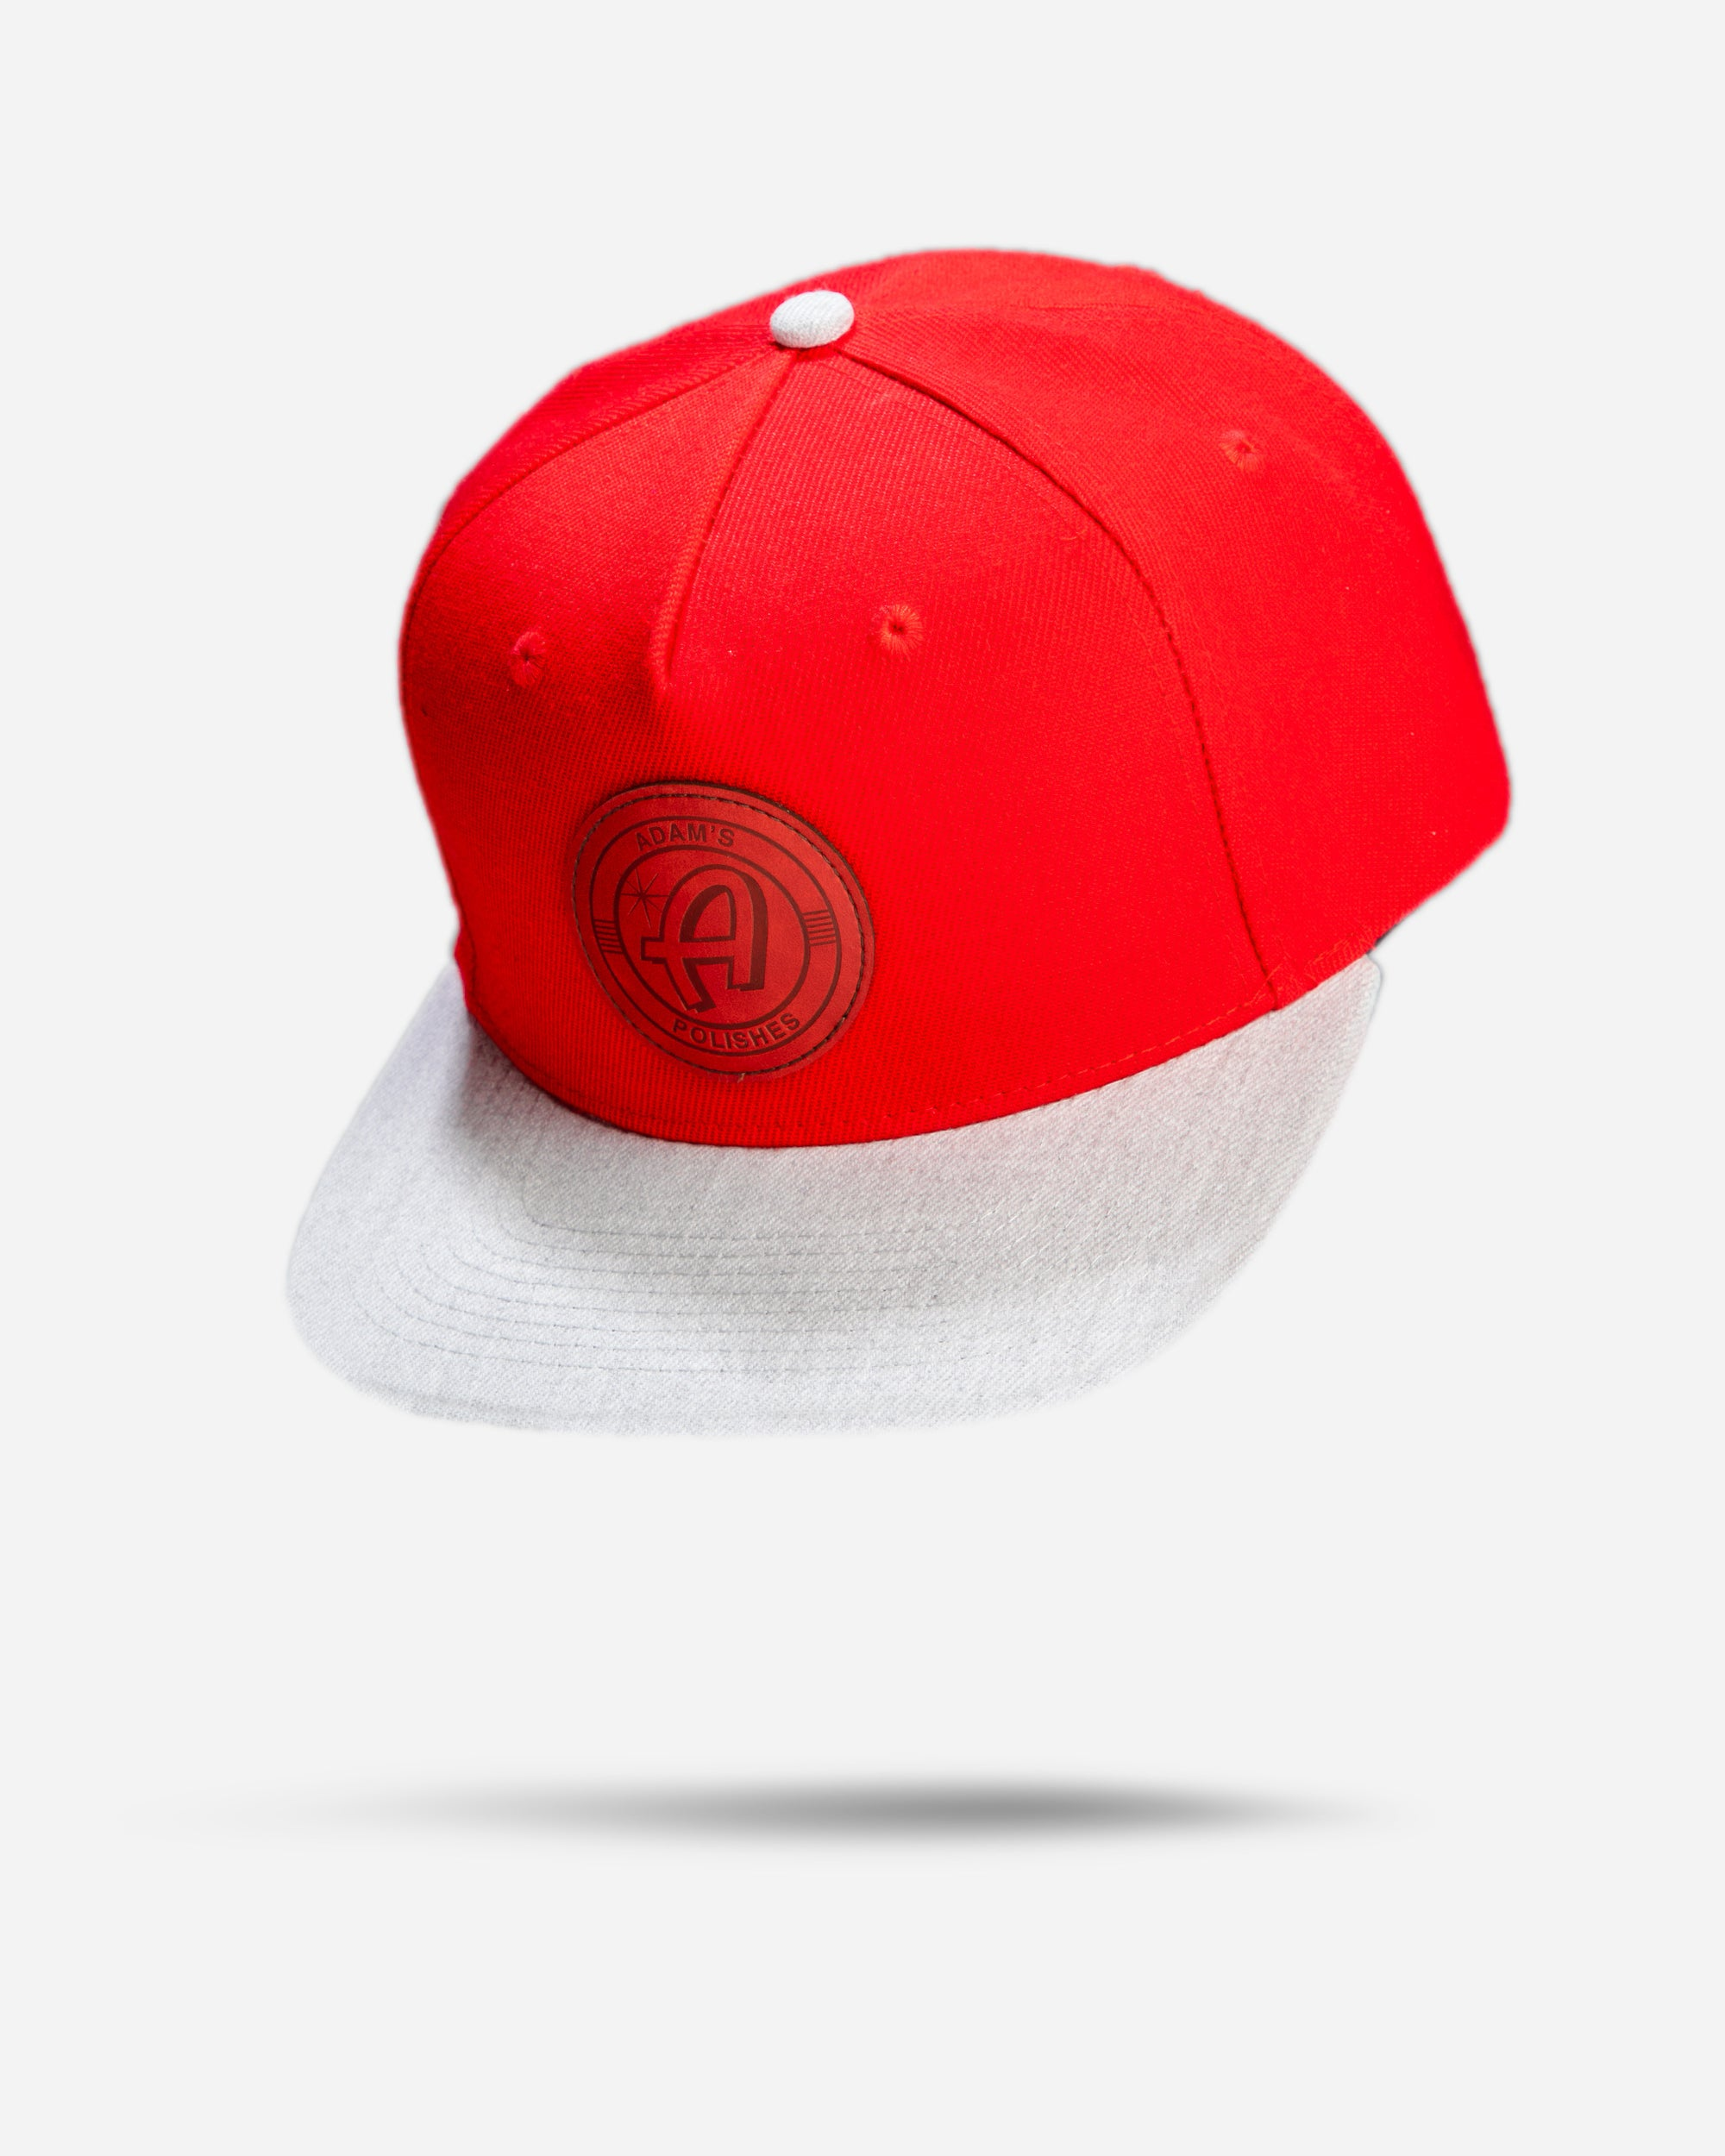 Adam's Red Snapback - Red Patch